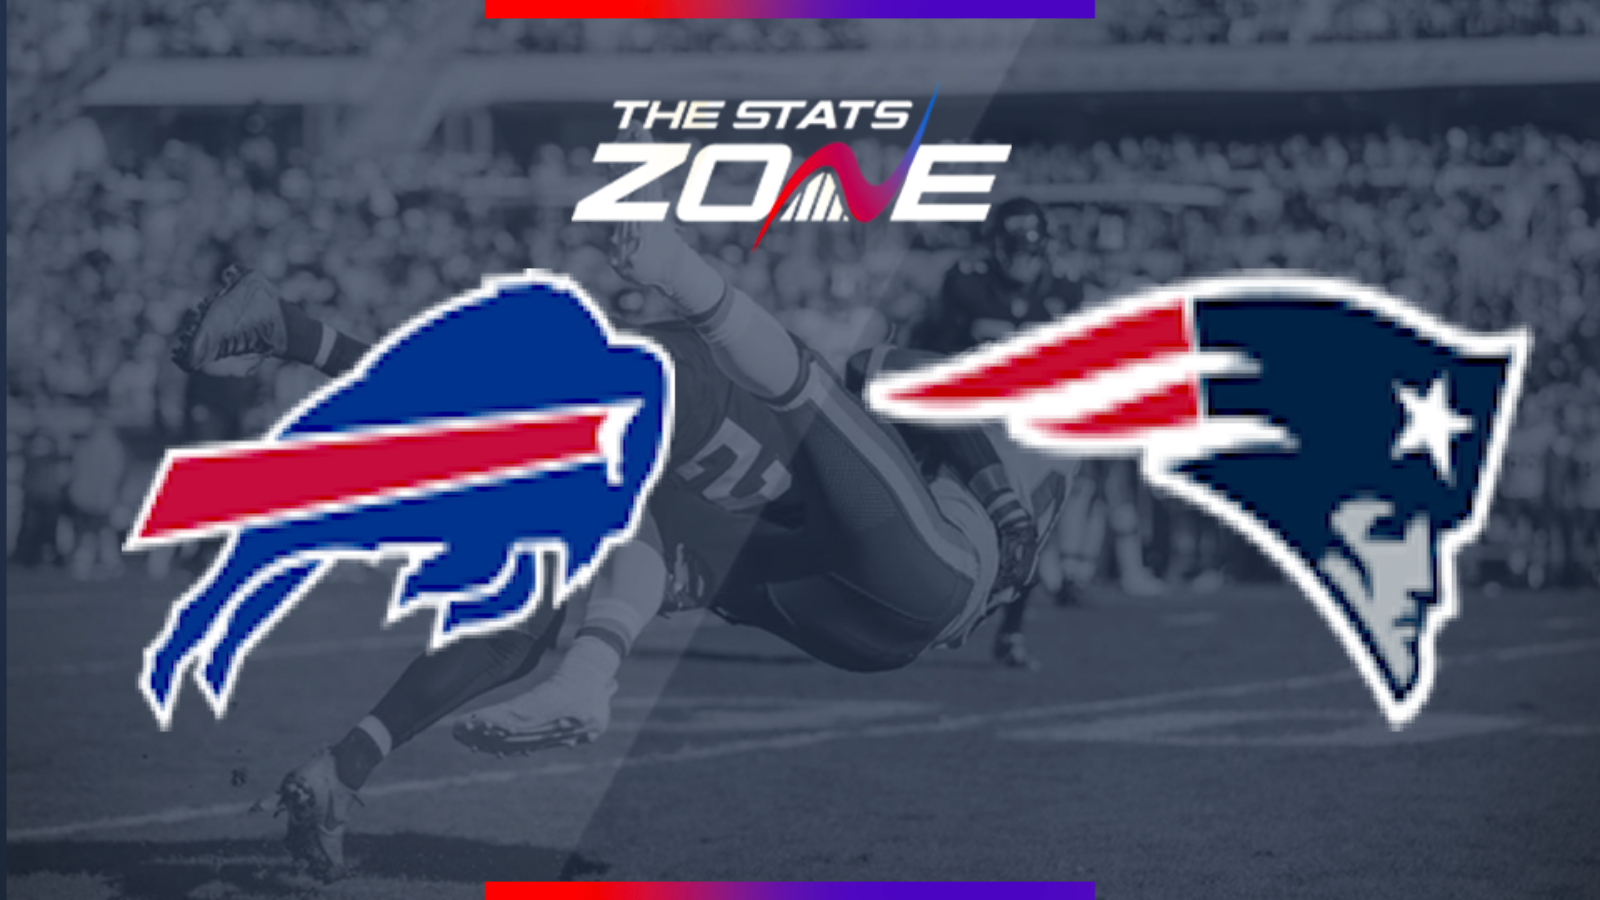 2019 Nfl Buffalo Bills New England Patriots Preview Pick The Stats Zone